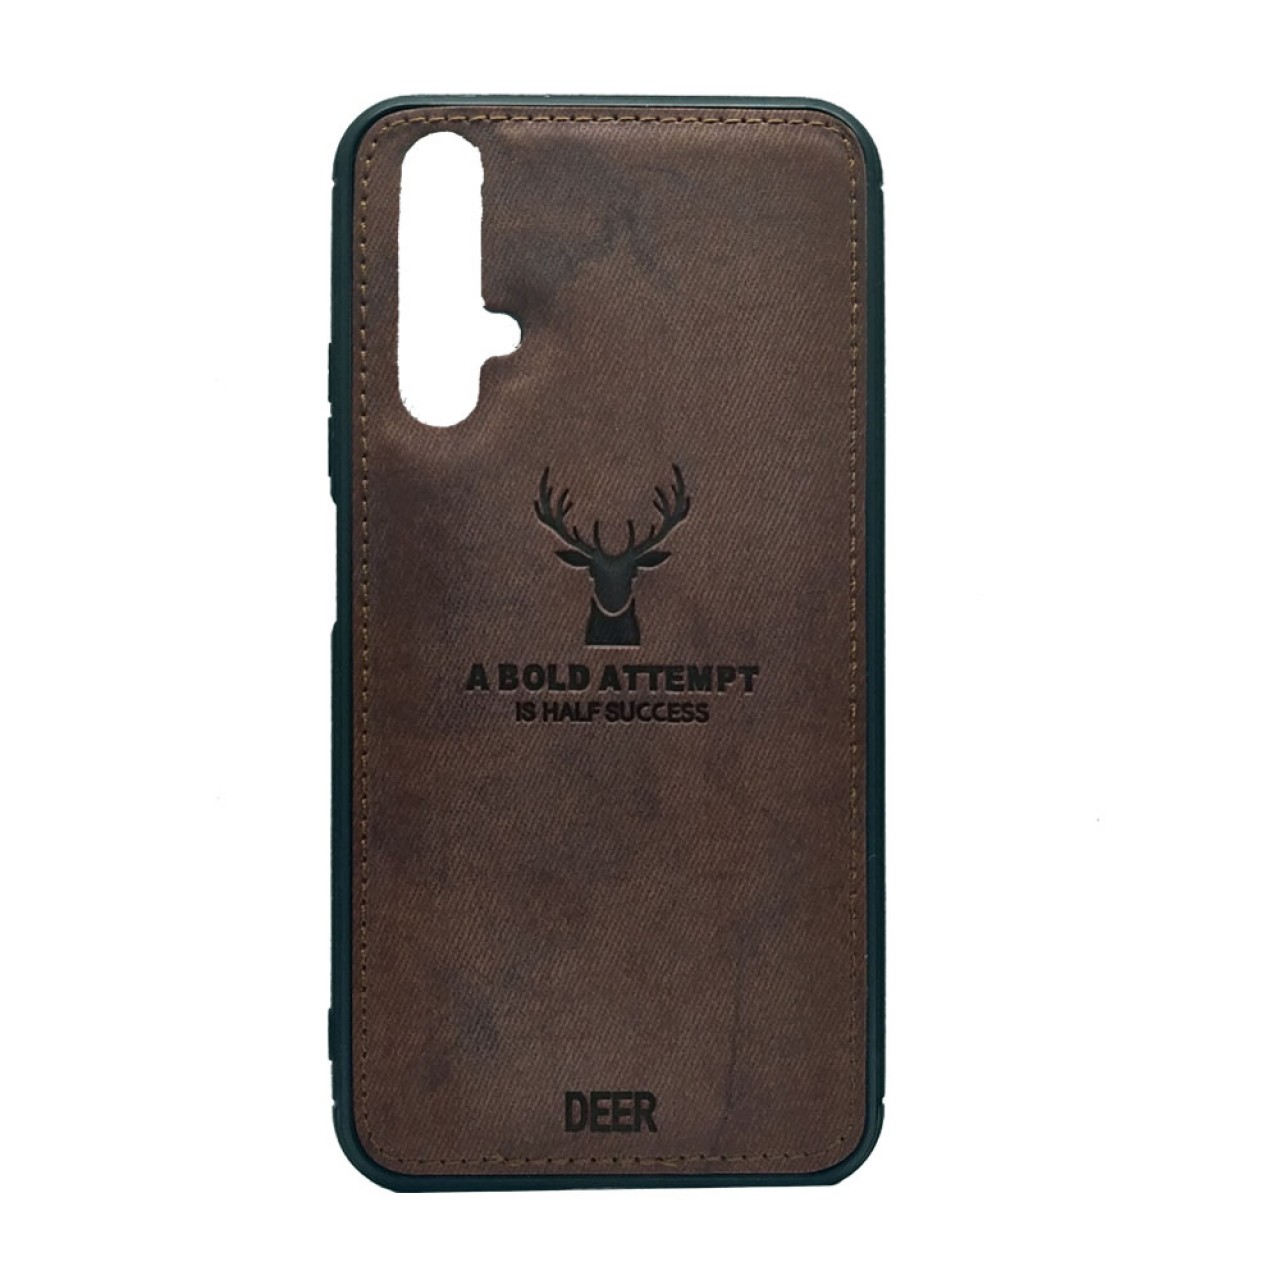 DEER CLOTH BACK CASE FOR HUAWEI NOVA 5T - BROWN